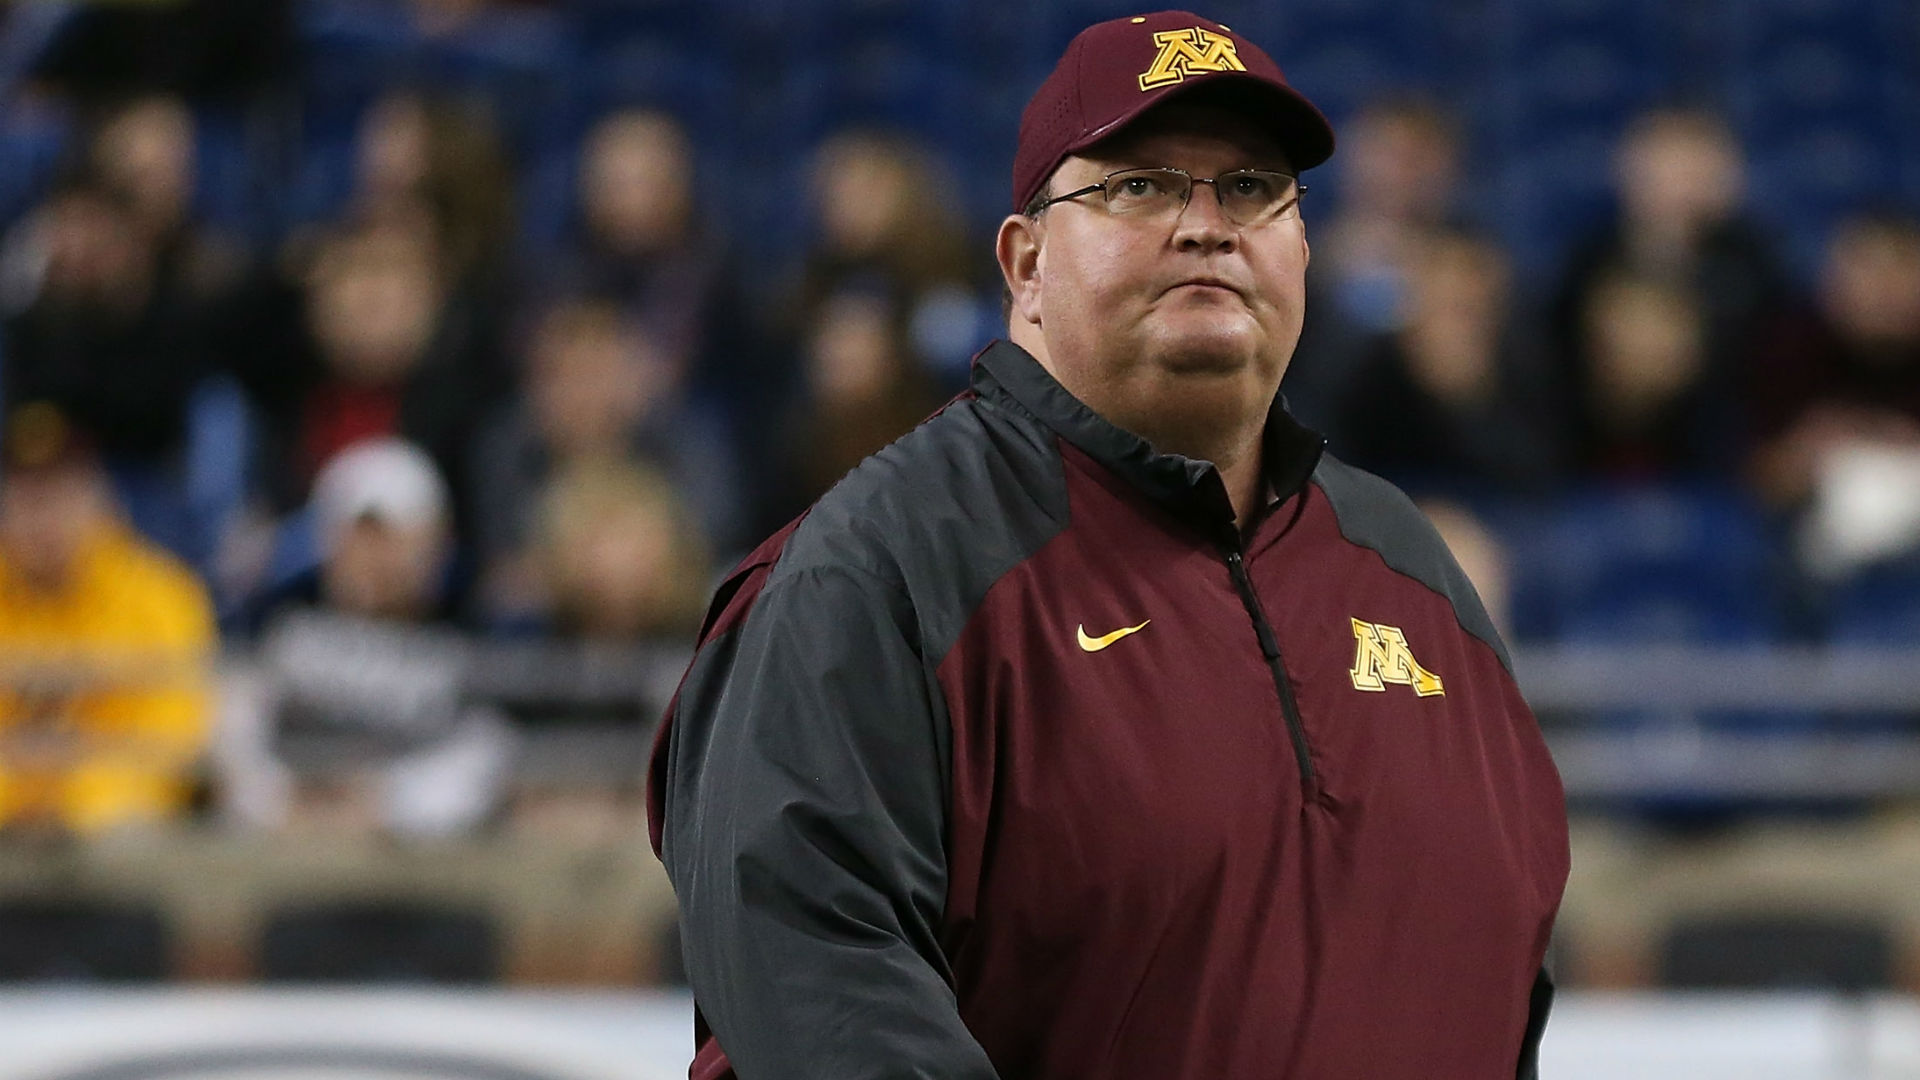 Minnesota team ends boycott threat, will go to Holiday Bowl